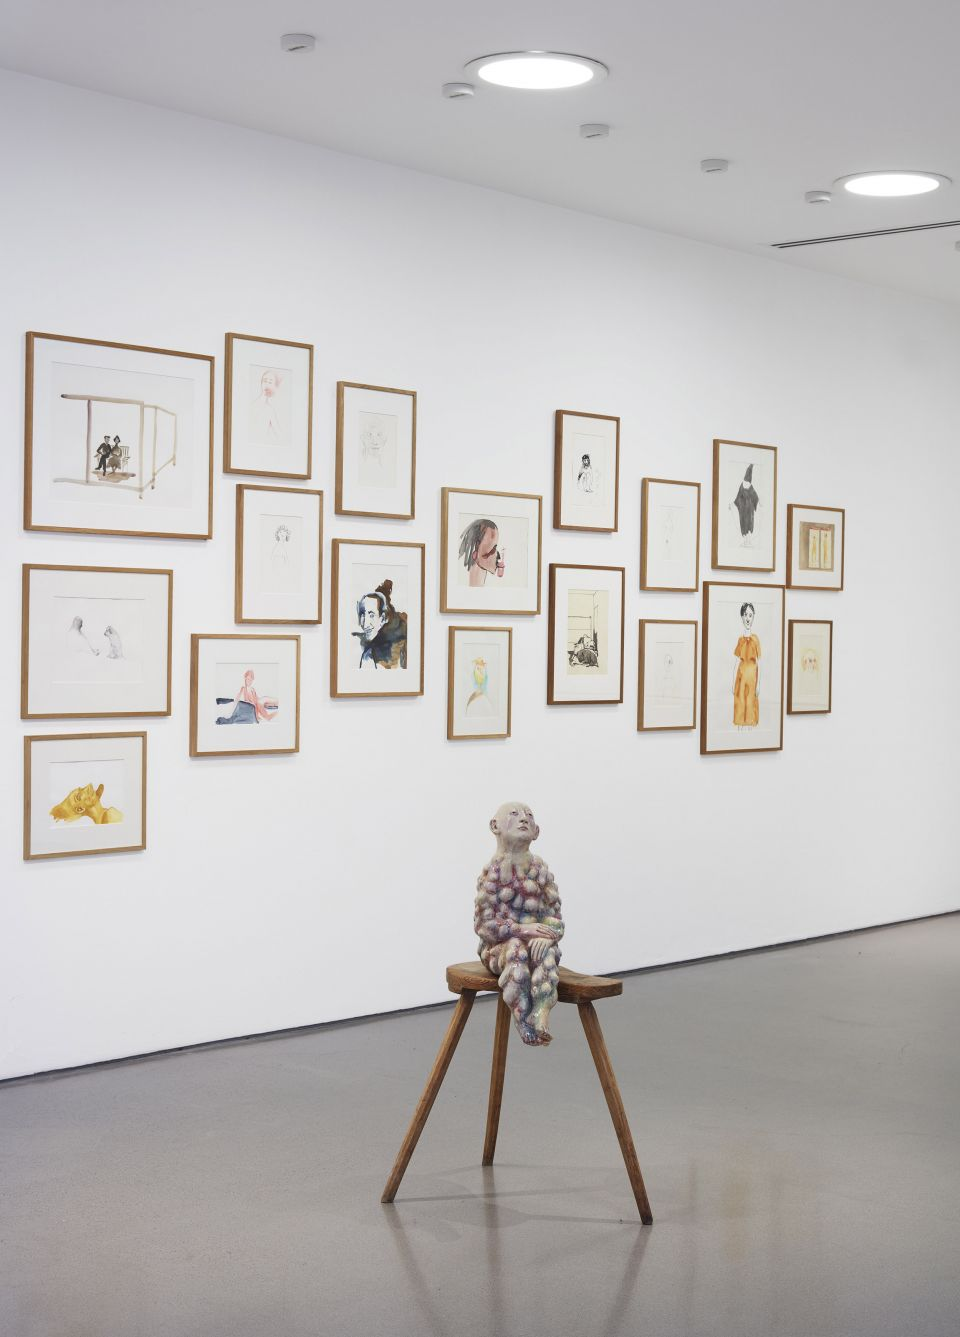 Installation shot of Paloma Varga Weisz: Bumped Body on display at Henry Moore Institute 13 March - 28 June 2020